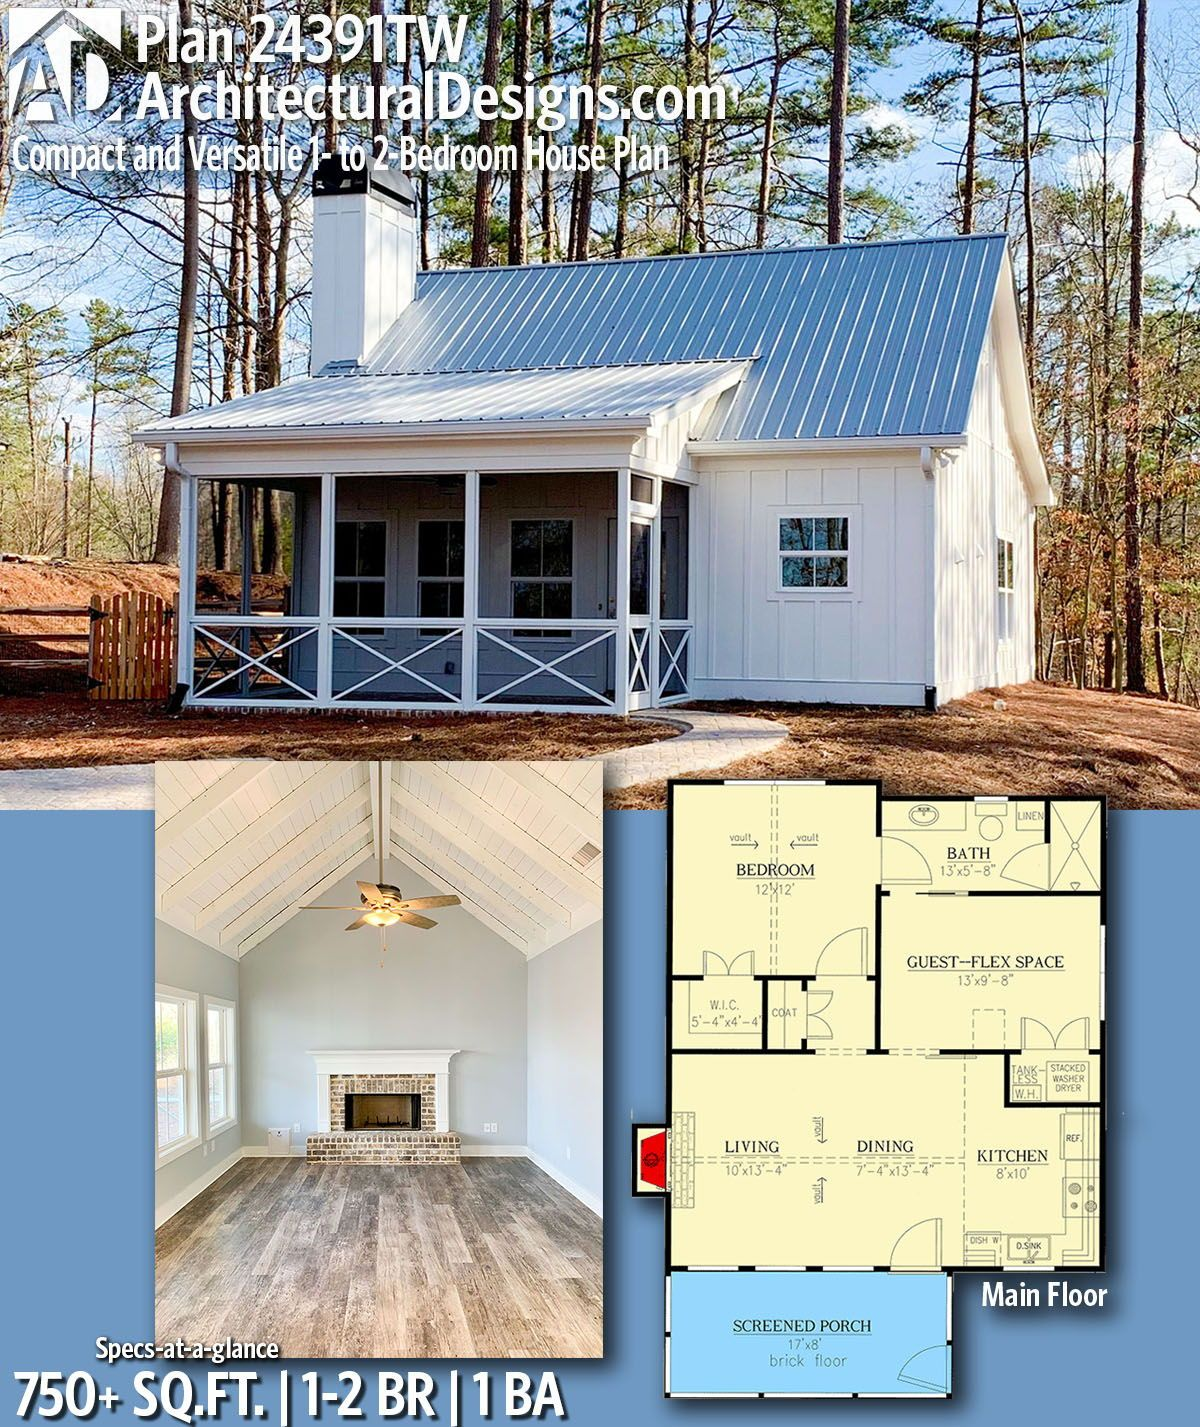 Plan 24391tw Compact And Versatile 1 To 2 Bedroom House Plan